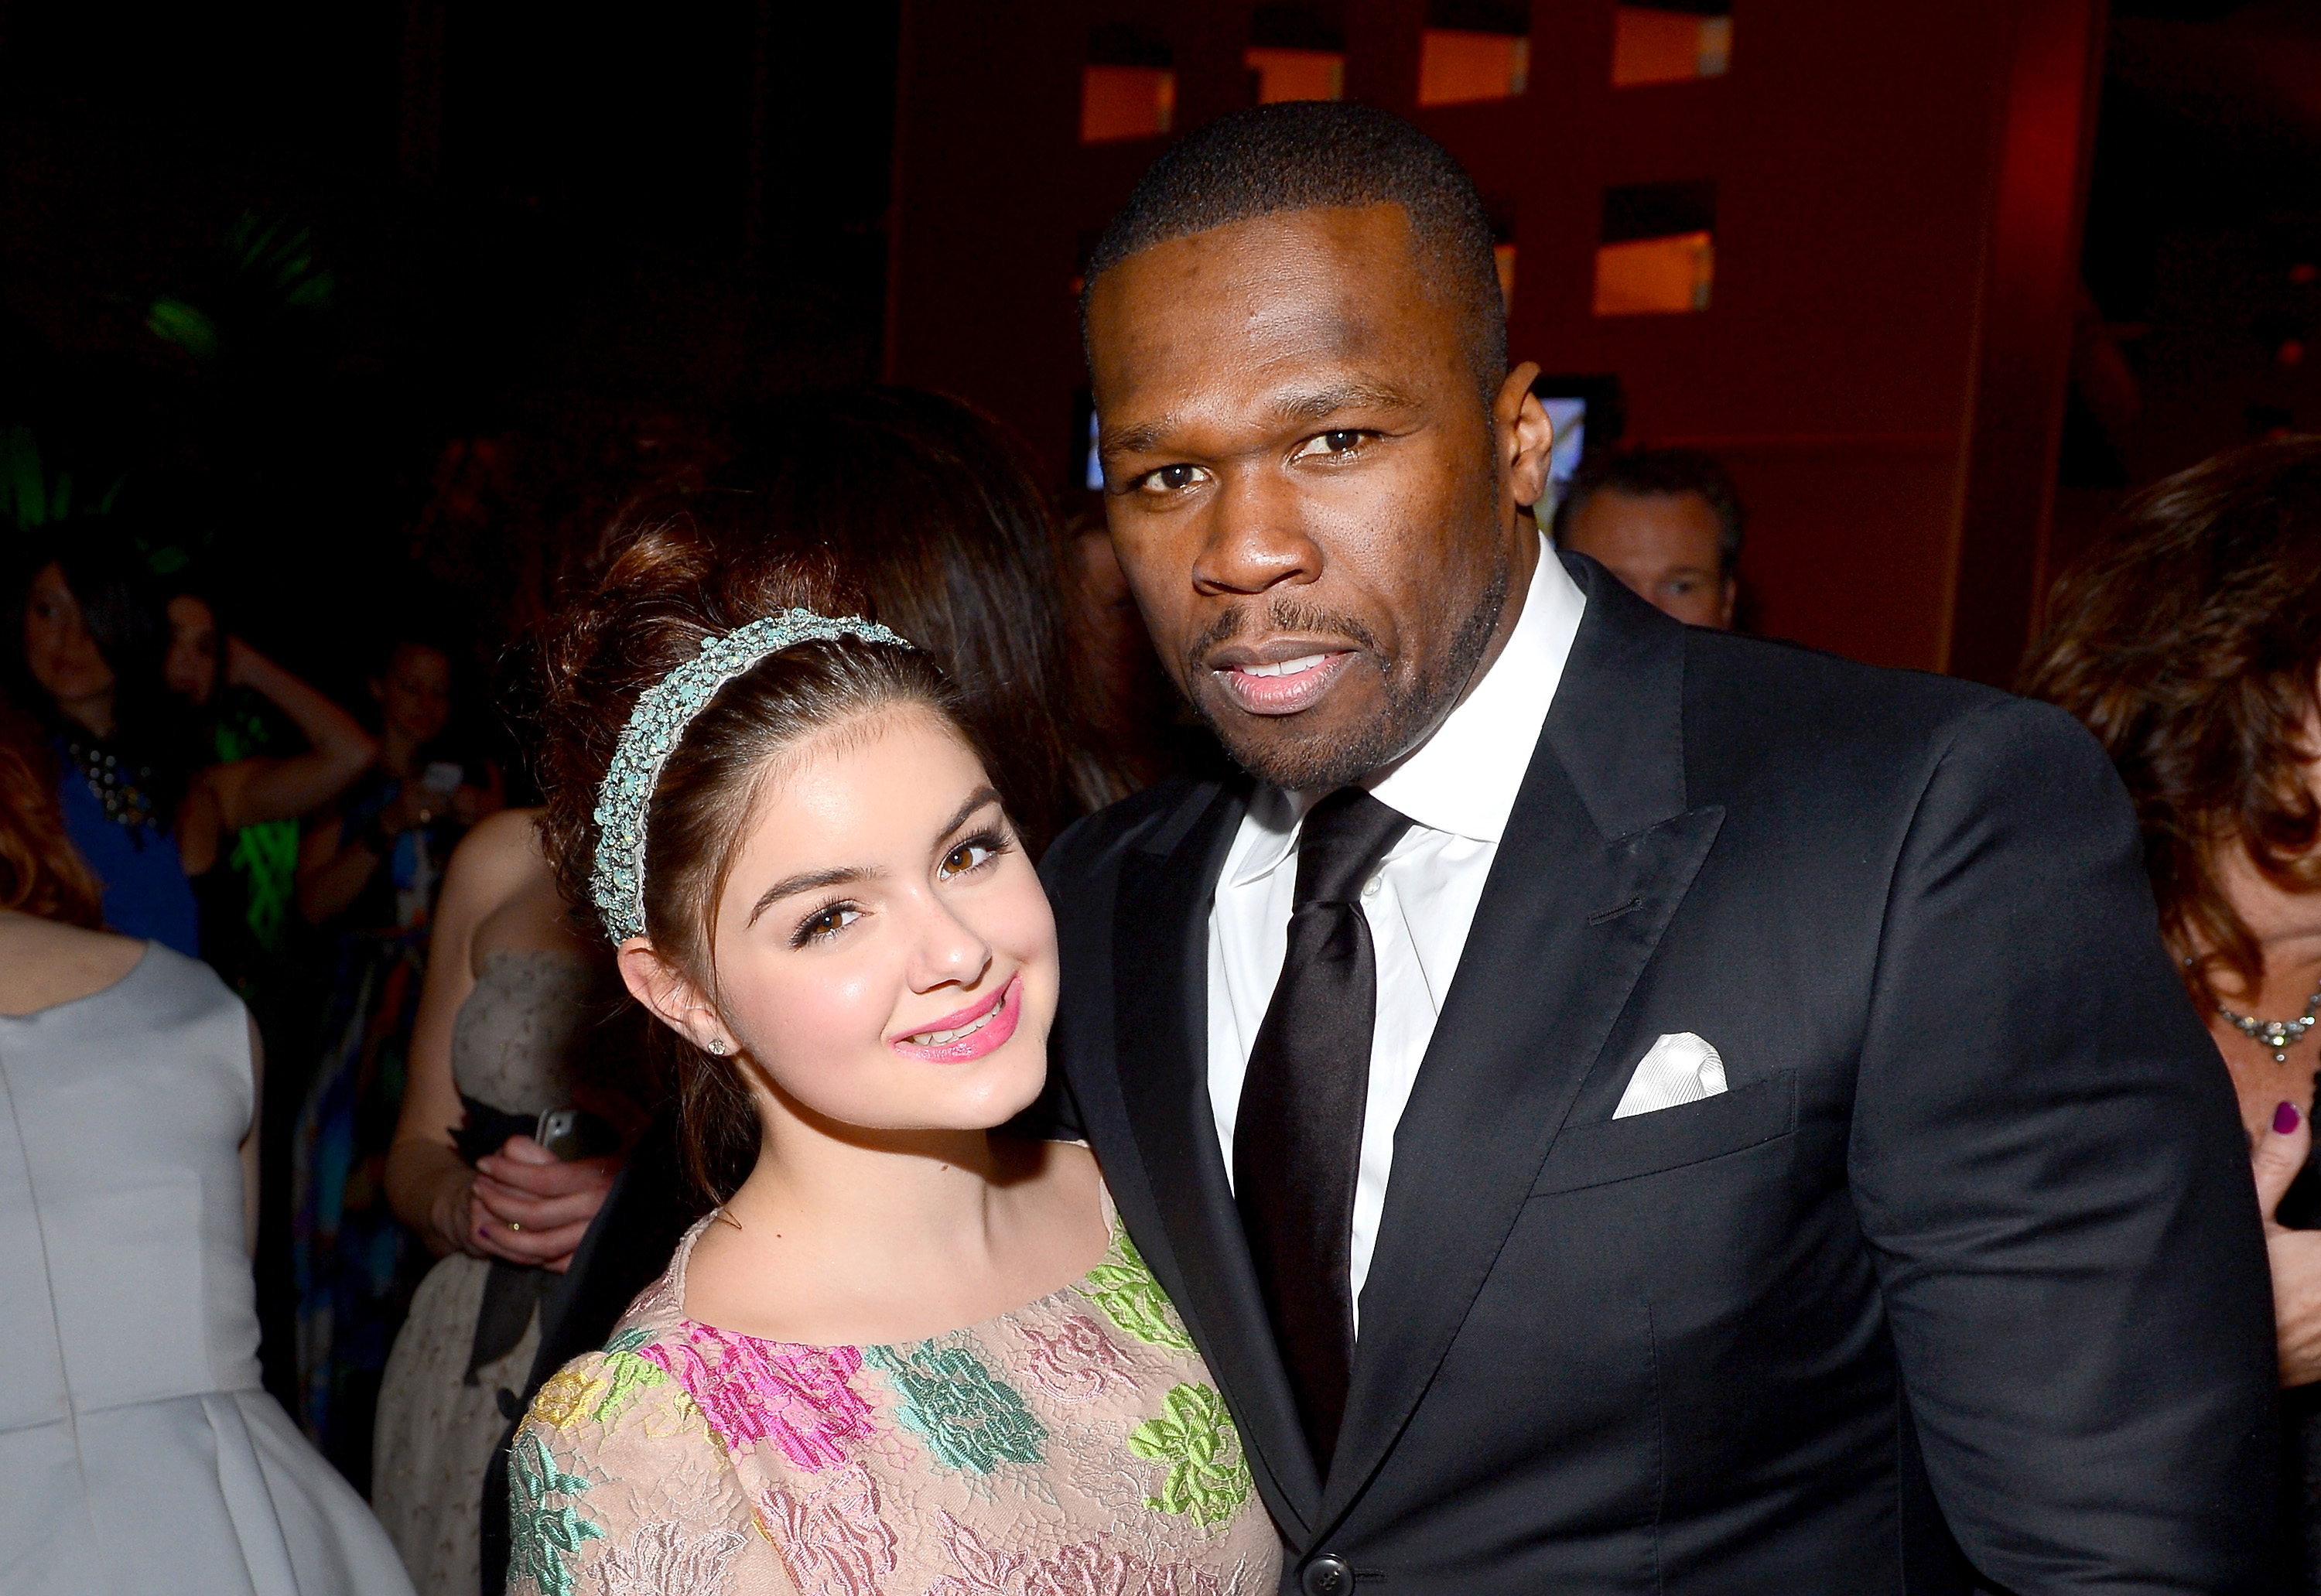 Ariel Winter and 50 cent posed together at the Fox after party.